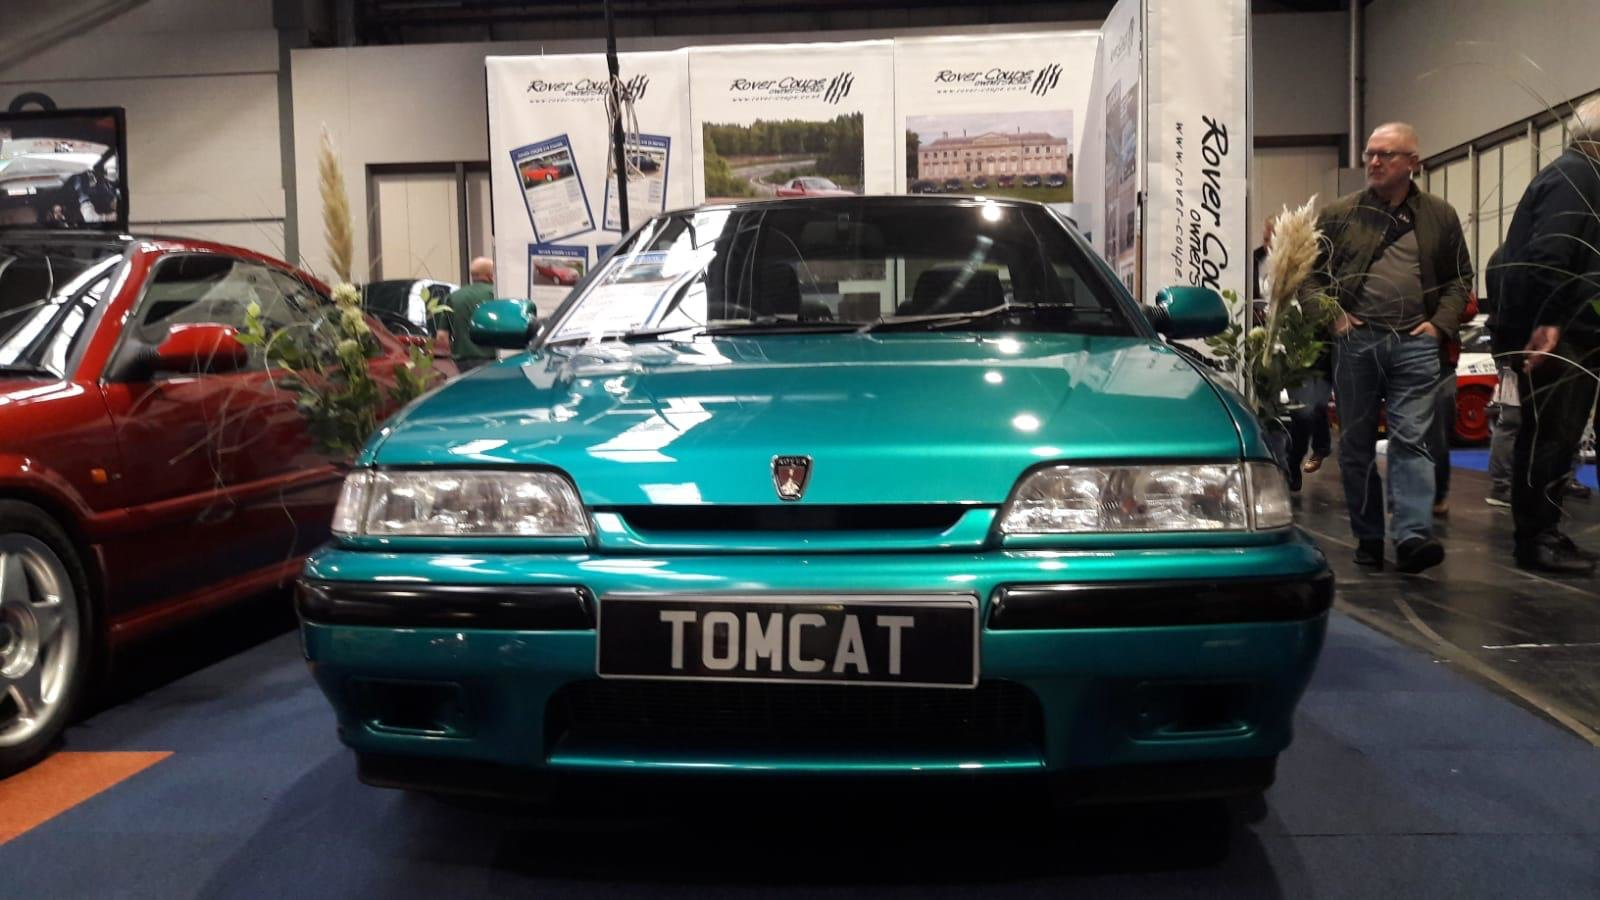 1993 Rover 'Tomcat' Coupe Honda Engine For Sale (picture 2 of 6)